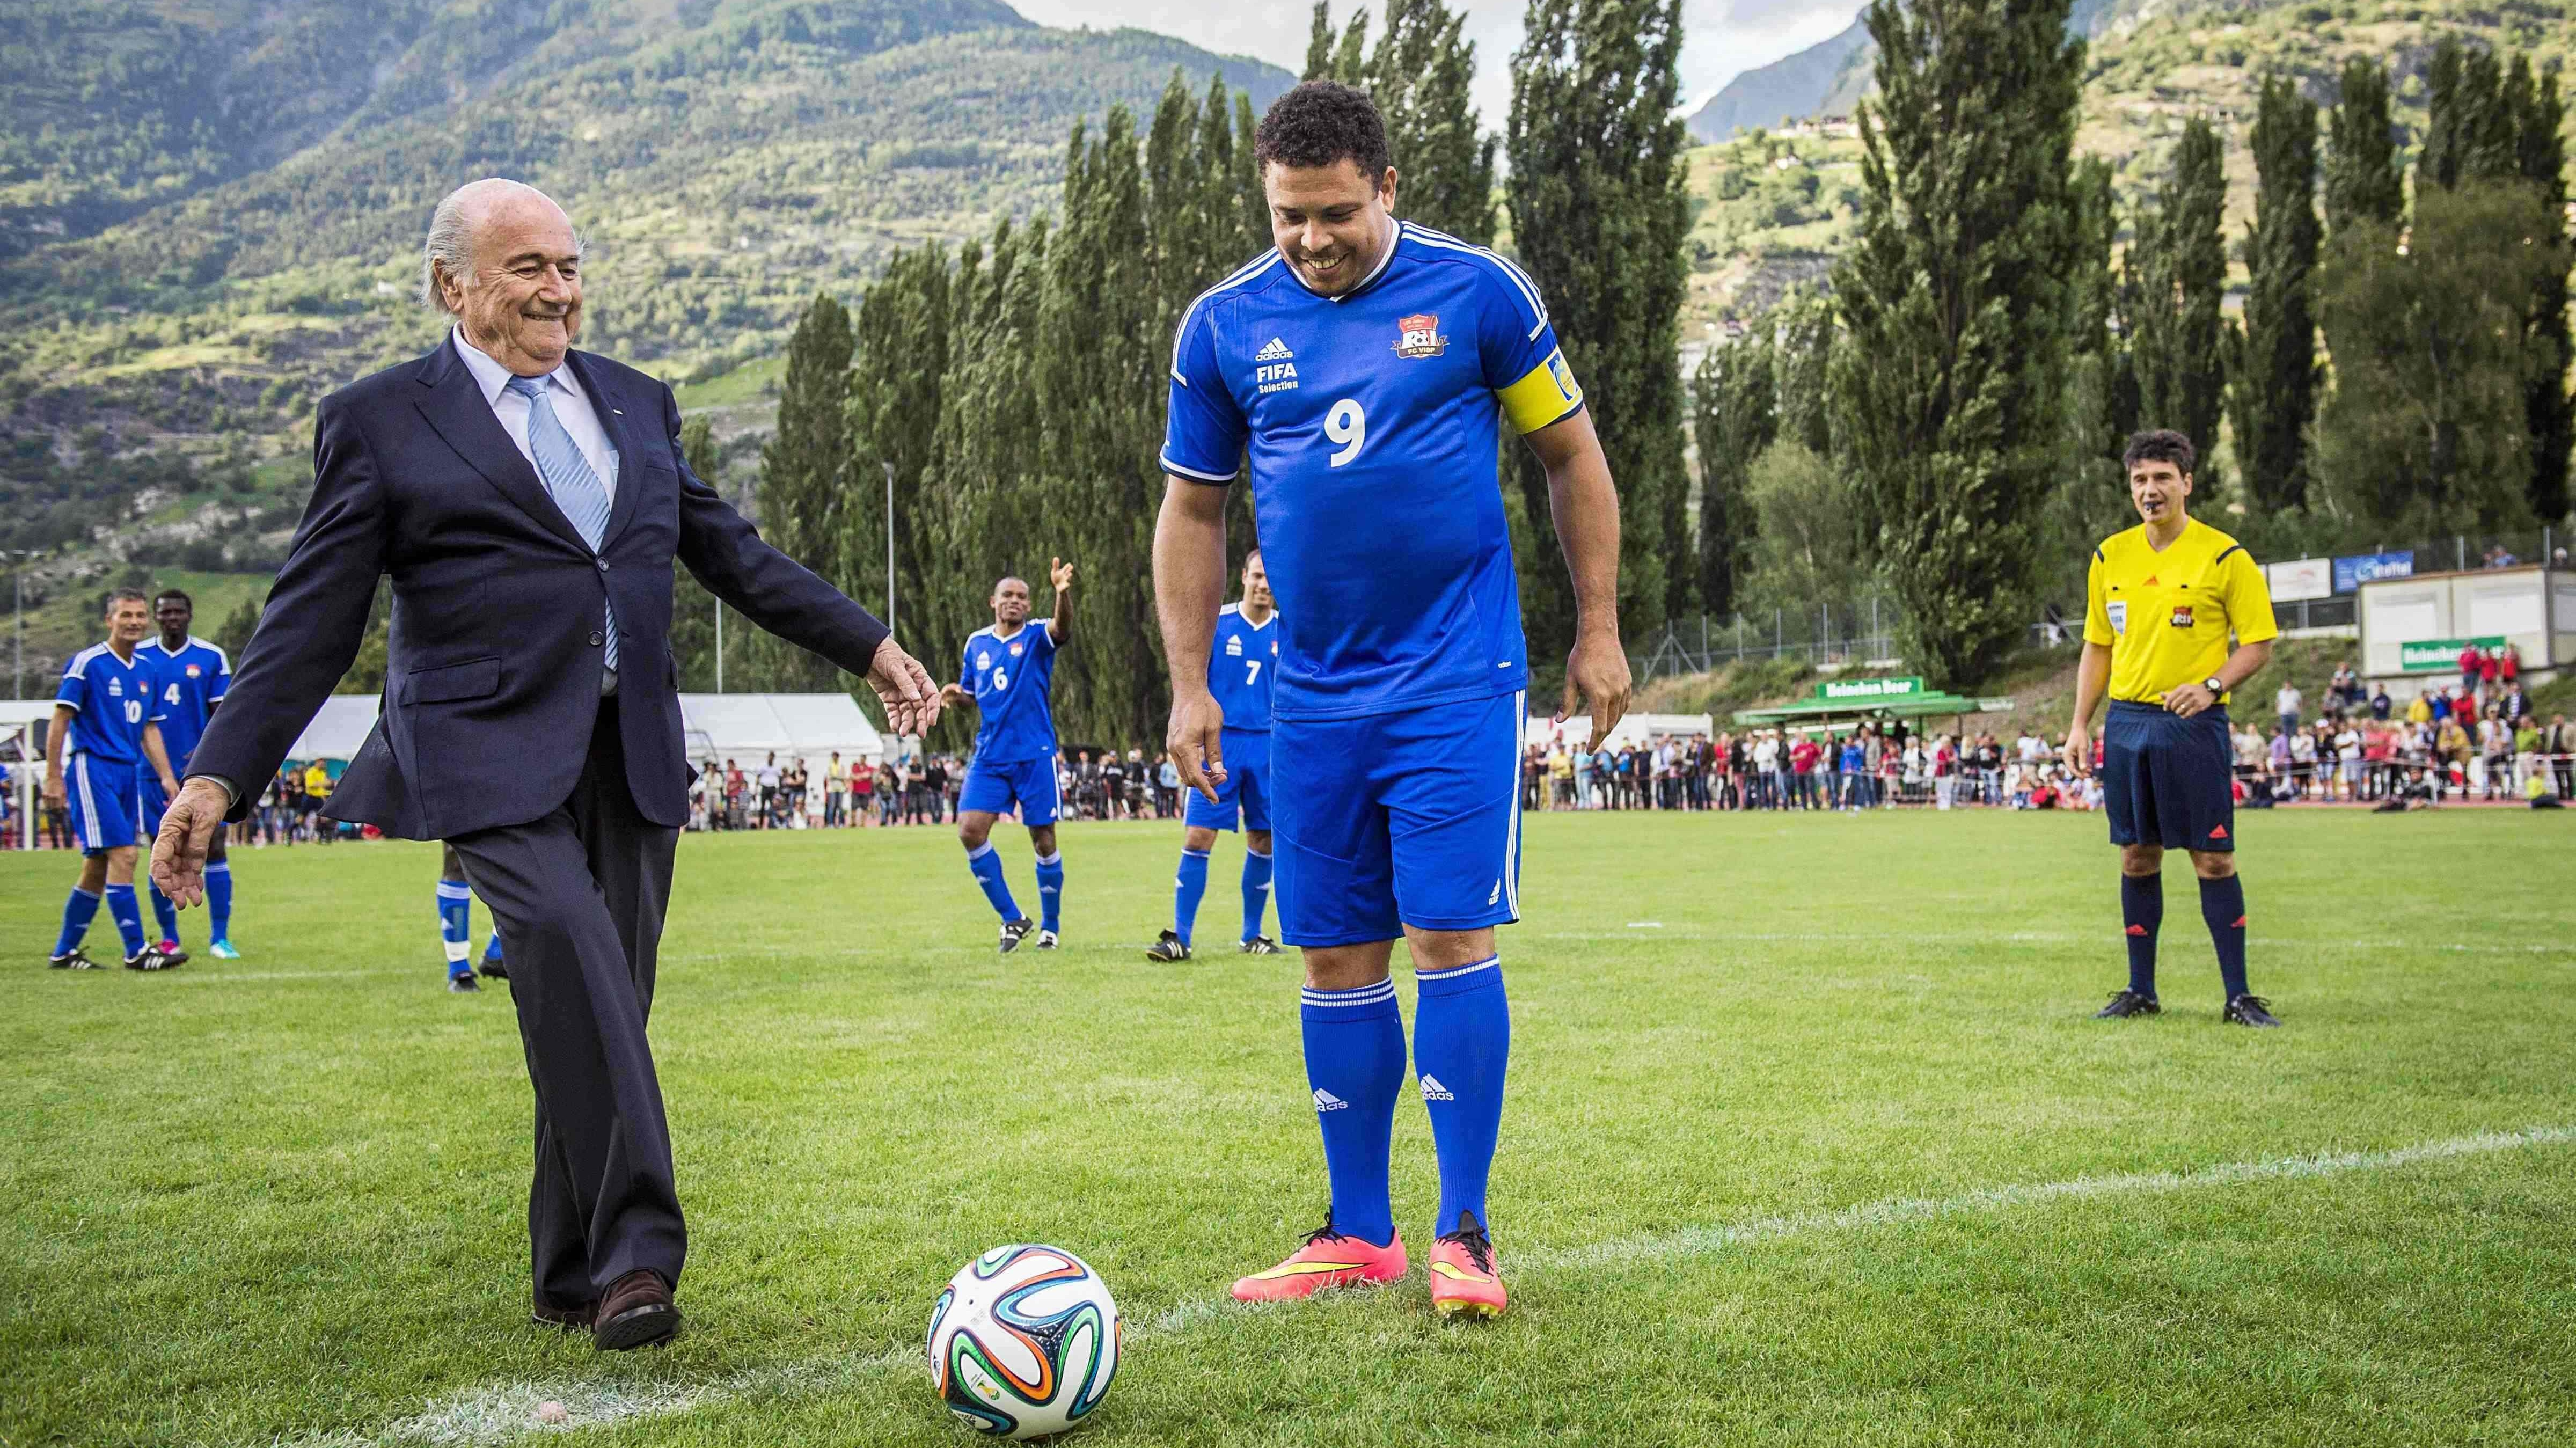 Welcome to Visp, Sepp Blatter's Mountain Haven